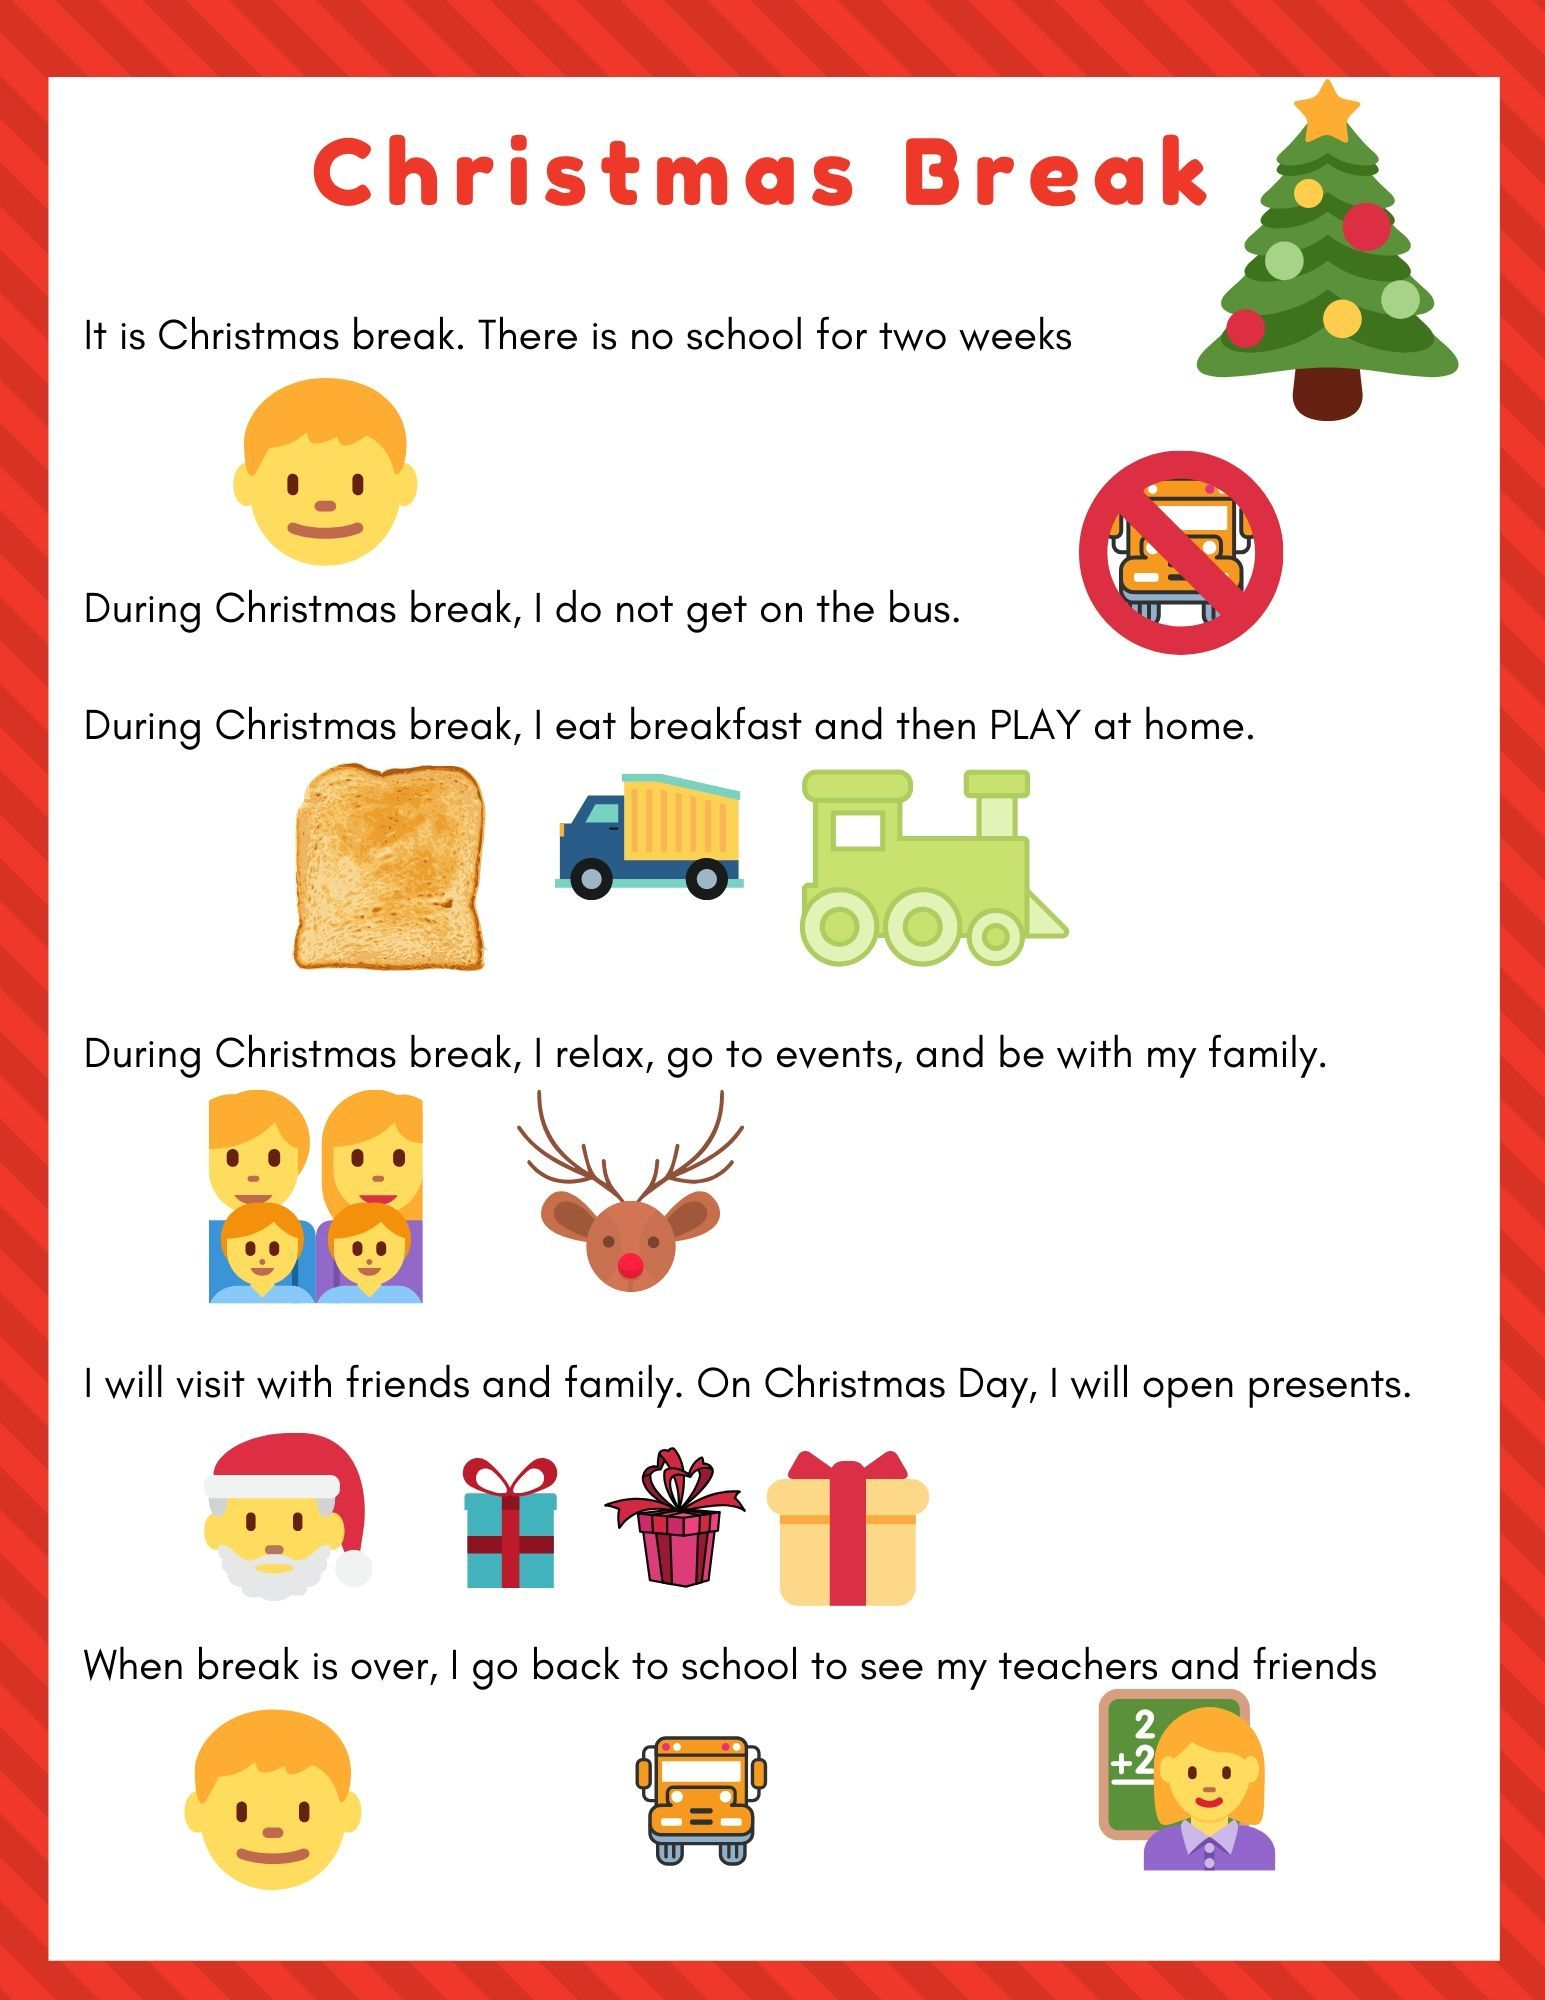 Nd Christmas Break 2020 Christmas Break Social Story (Free Printables!) | Ish Mom in 2020